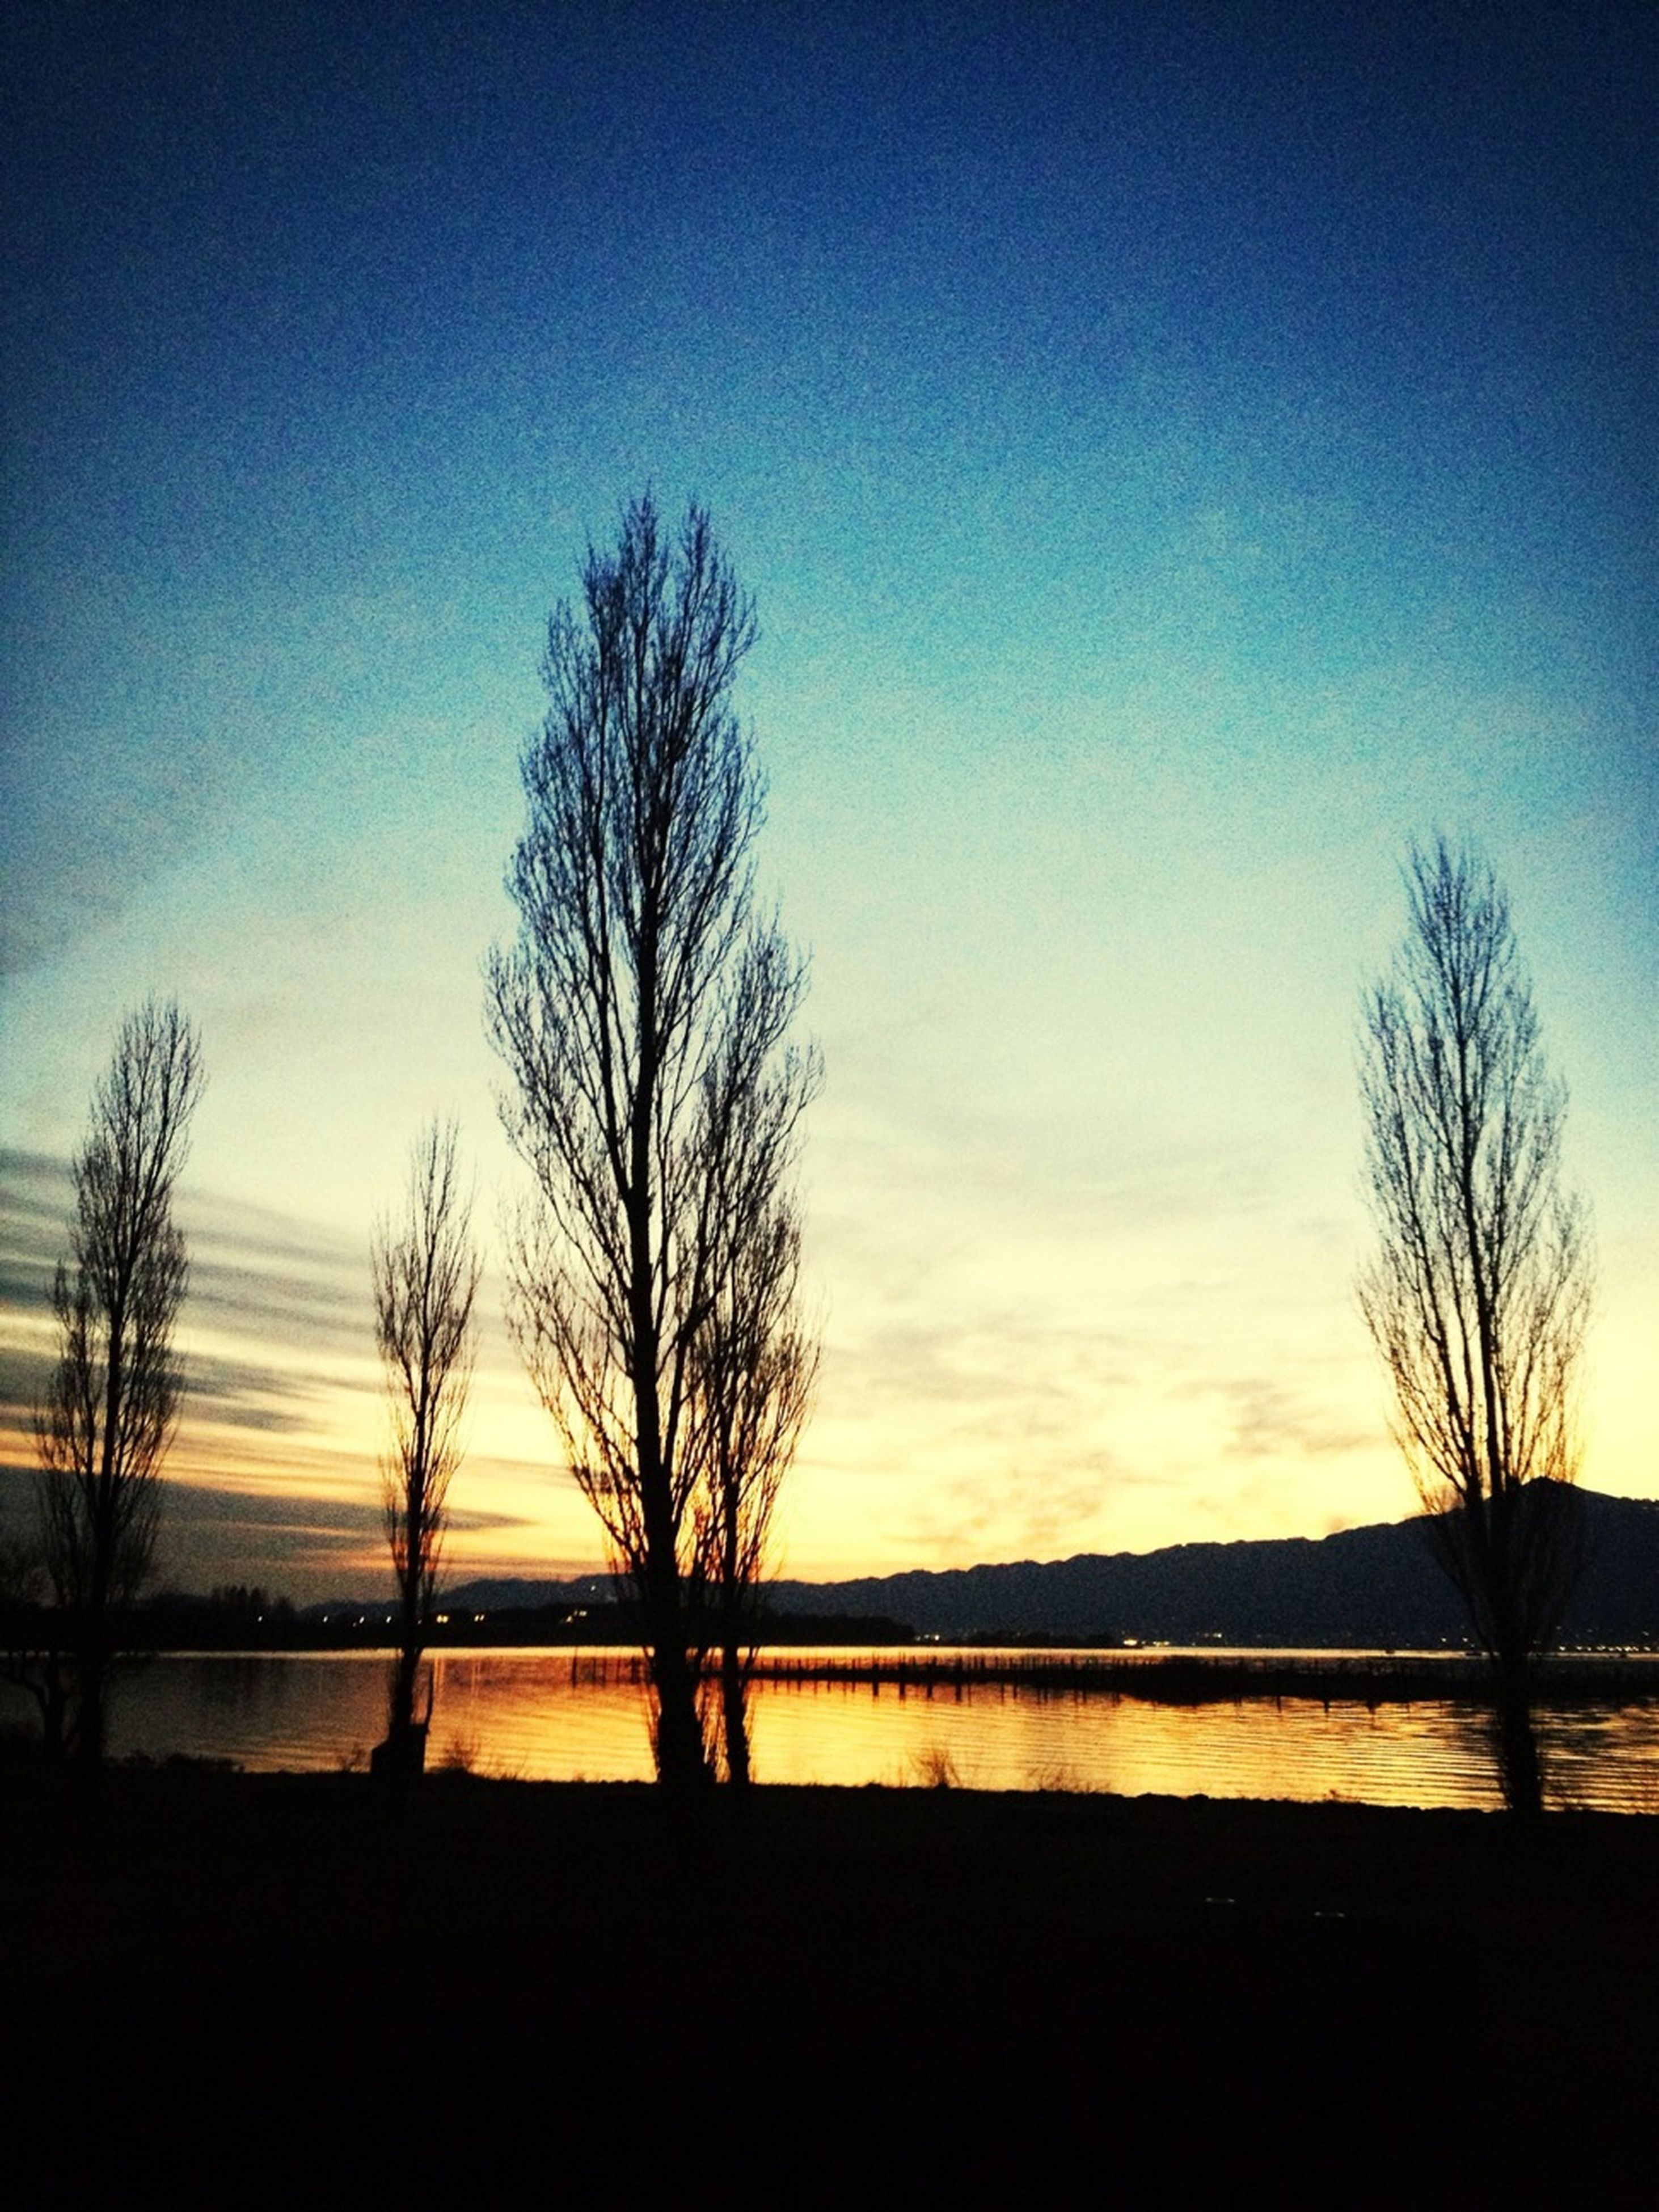 bare tree, silhouette, tranquil scene, tranquility, sunset, scenics, tree, water, beauty in nature, sky, branch, nature, idyllic, lake, tree trunk, blue, landscape, non-urban scene, reflection, outdoors